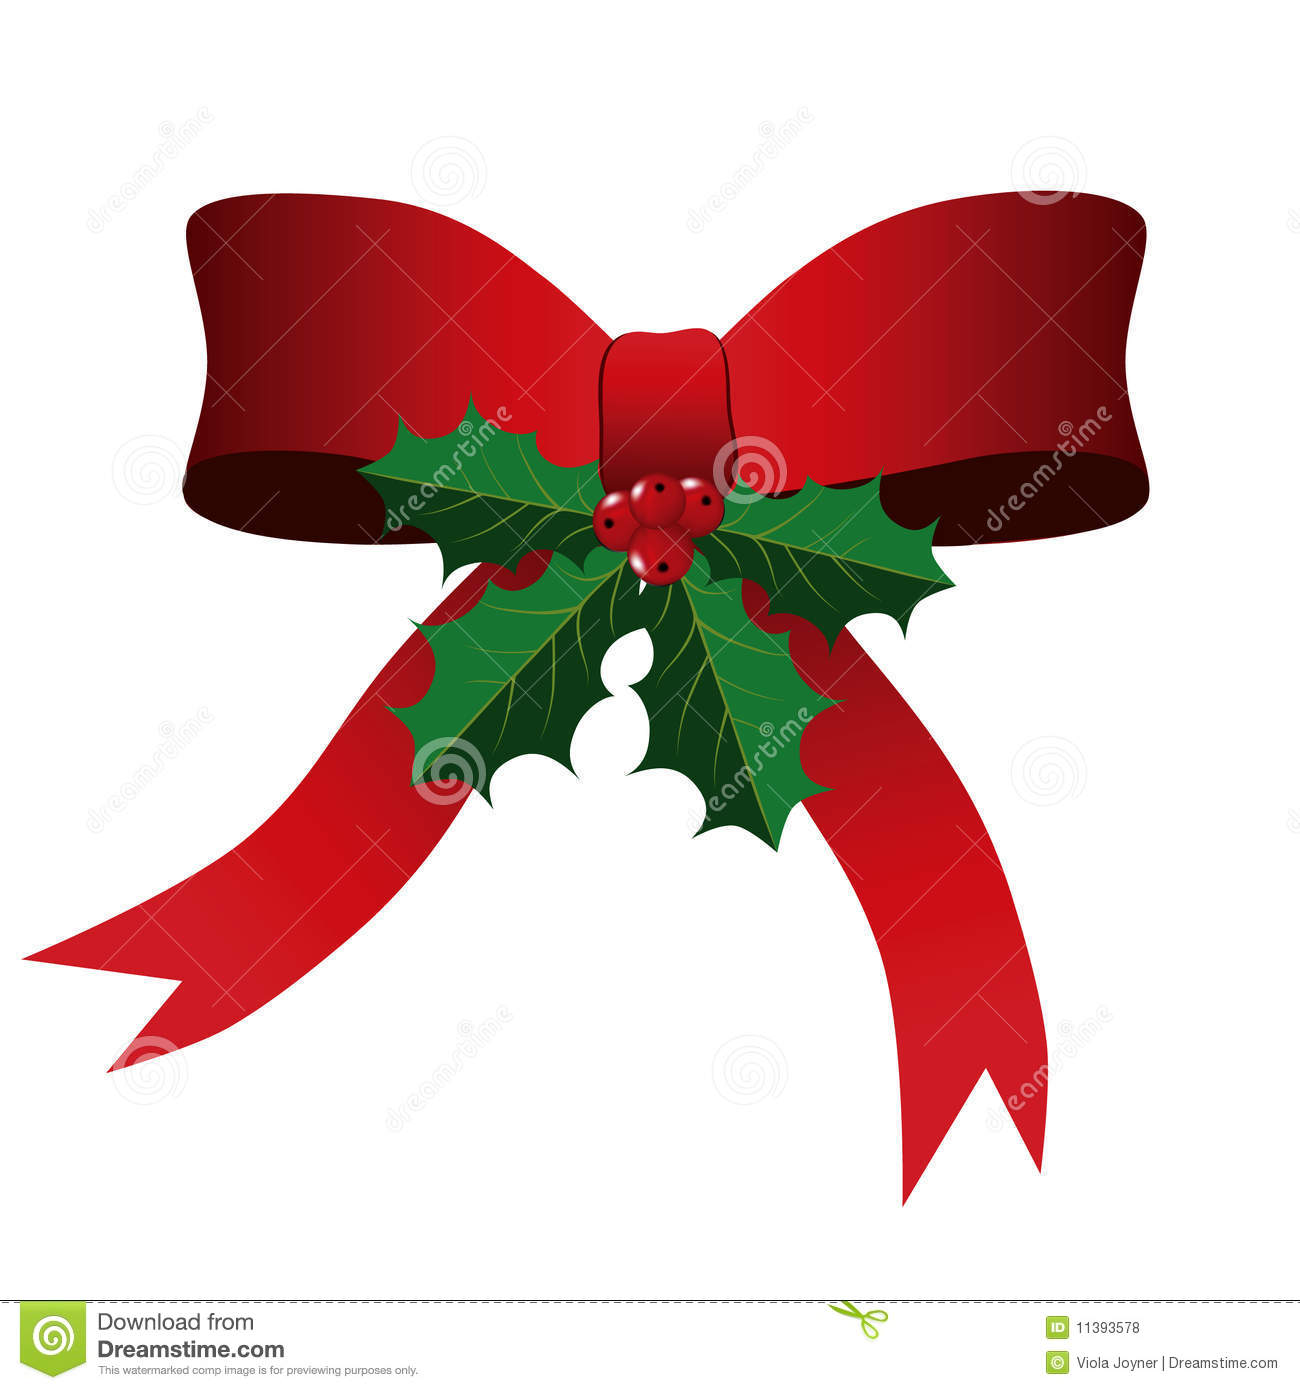 Holly Leaves And Berries Clip Art Red bow with holly leaves